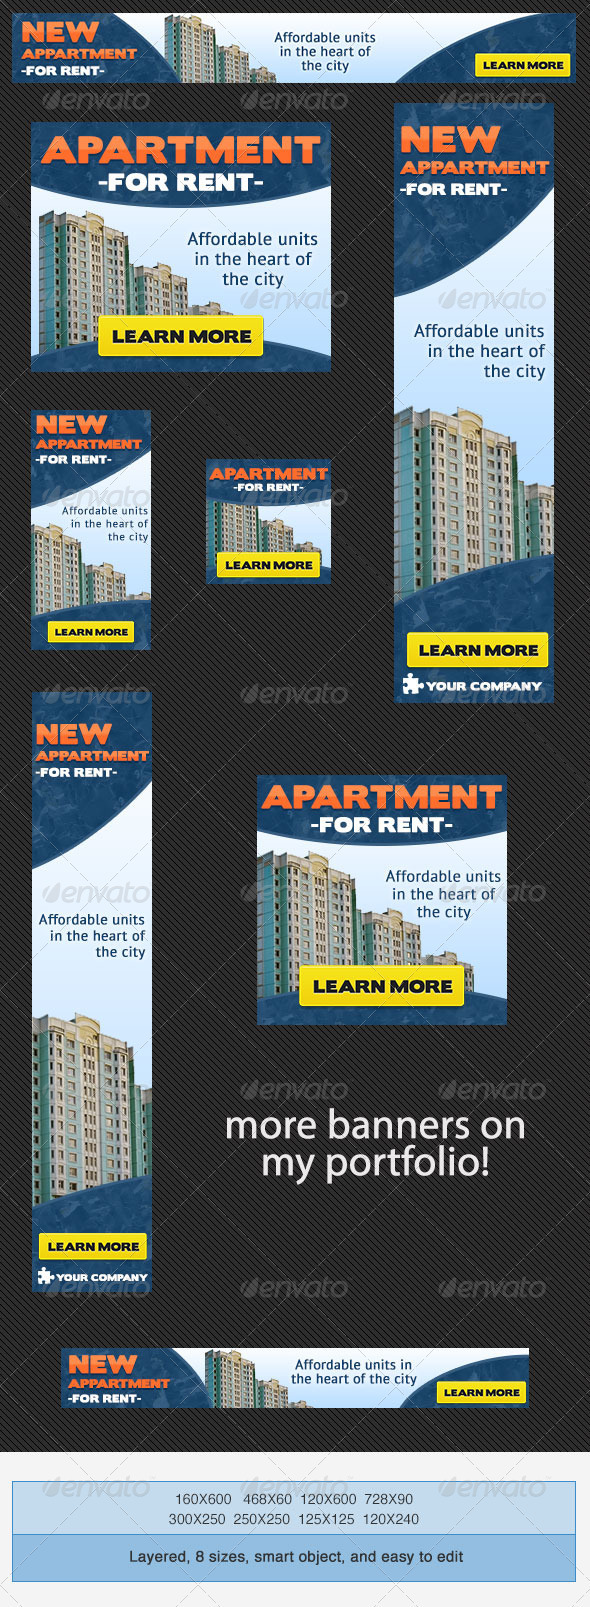 Real Estate Apartment Banner Ad - Banners & Ads Web Elements